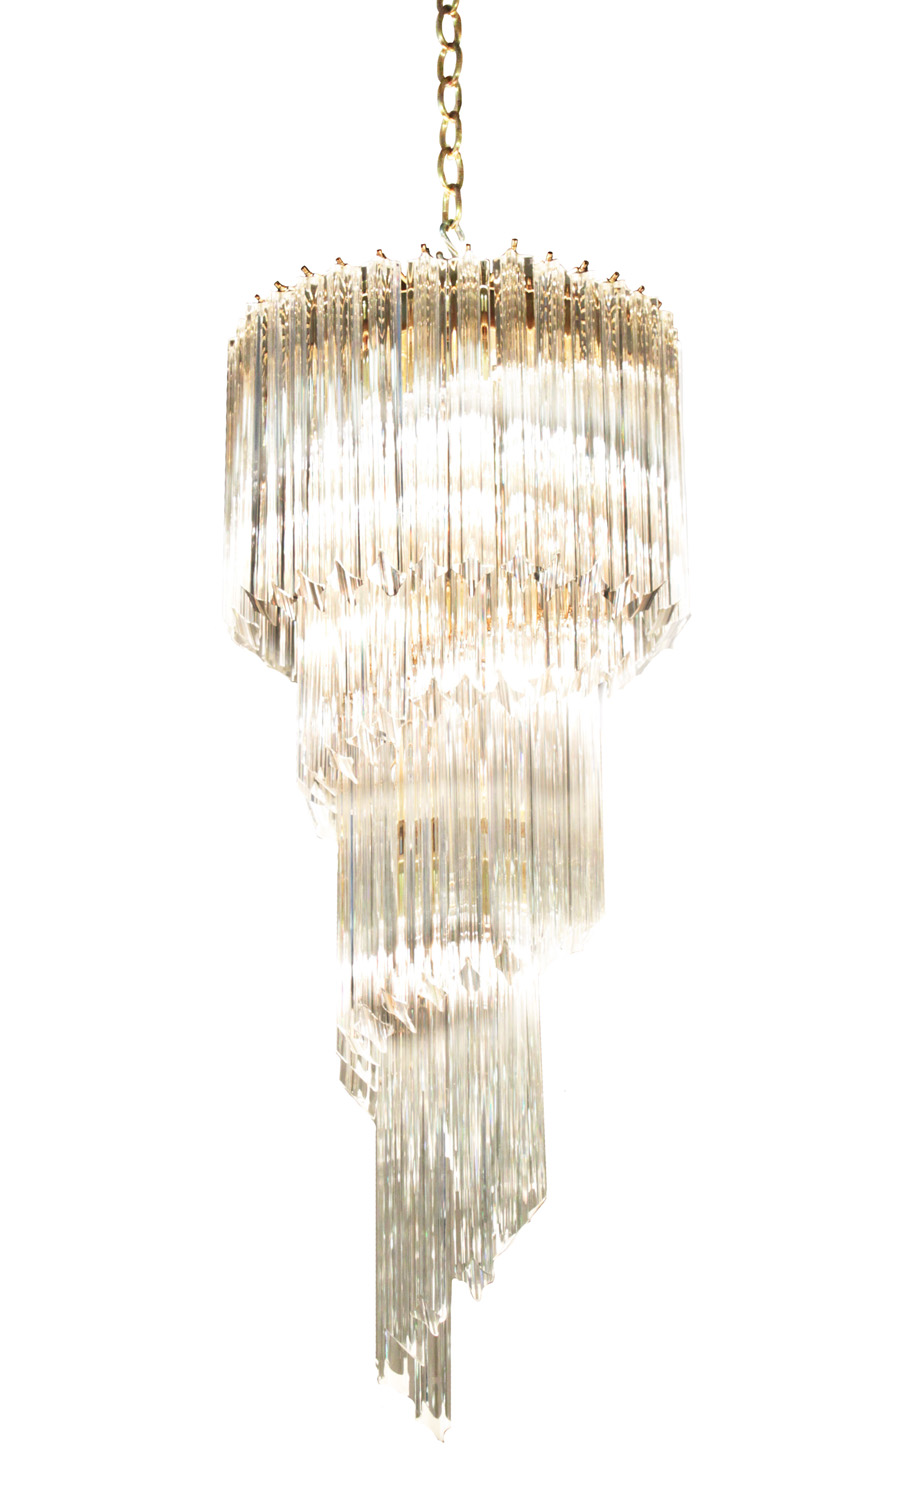 Venini 65 medium spiral glas rods chandelier hires.jpg